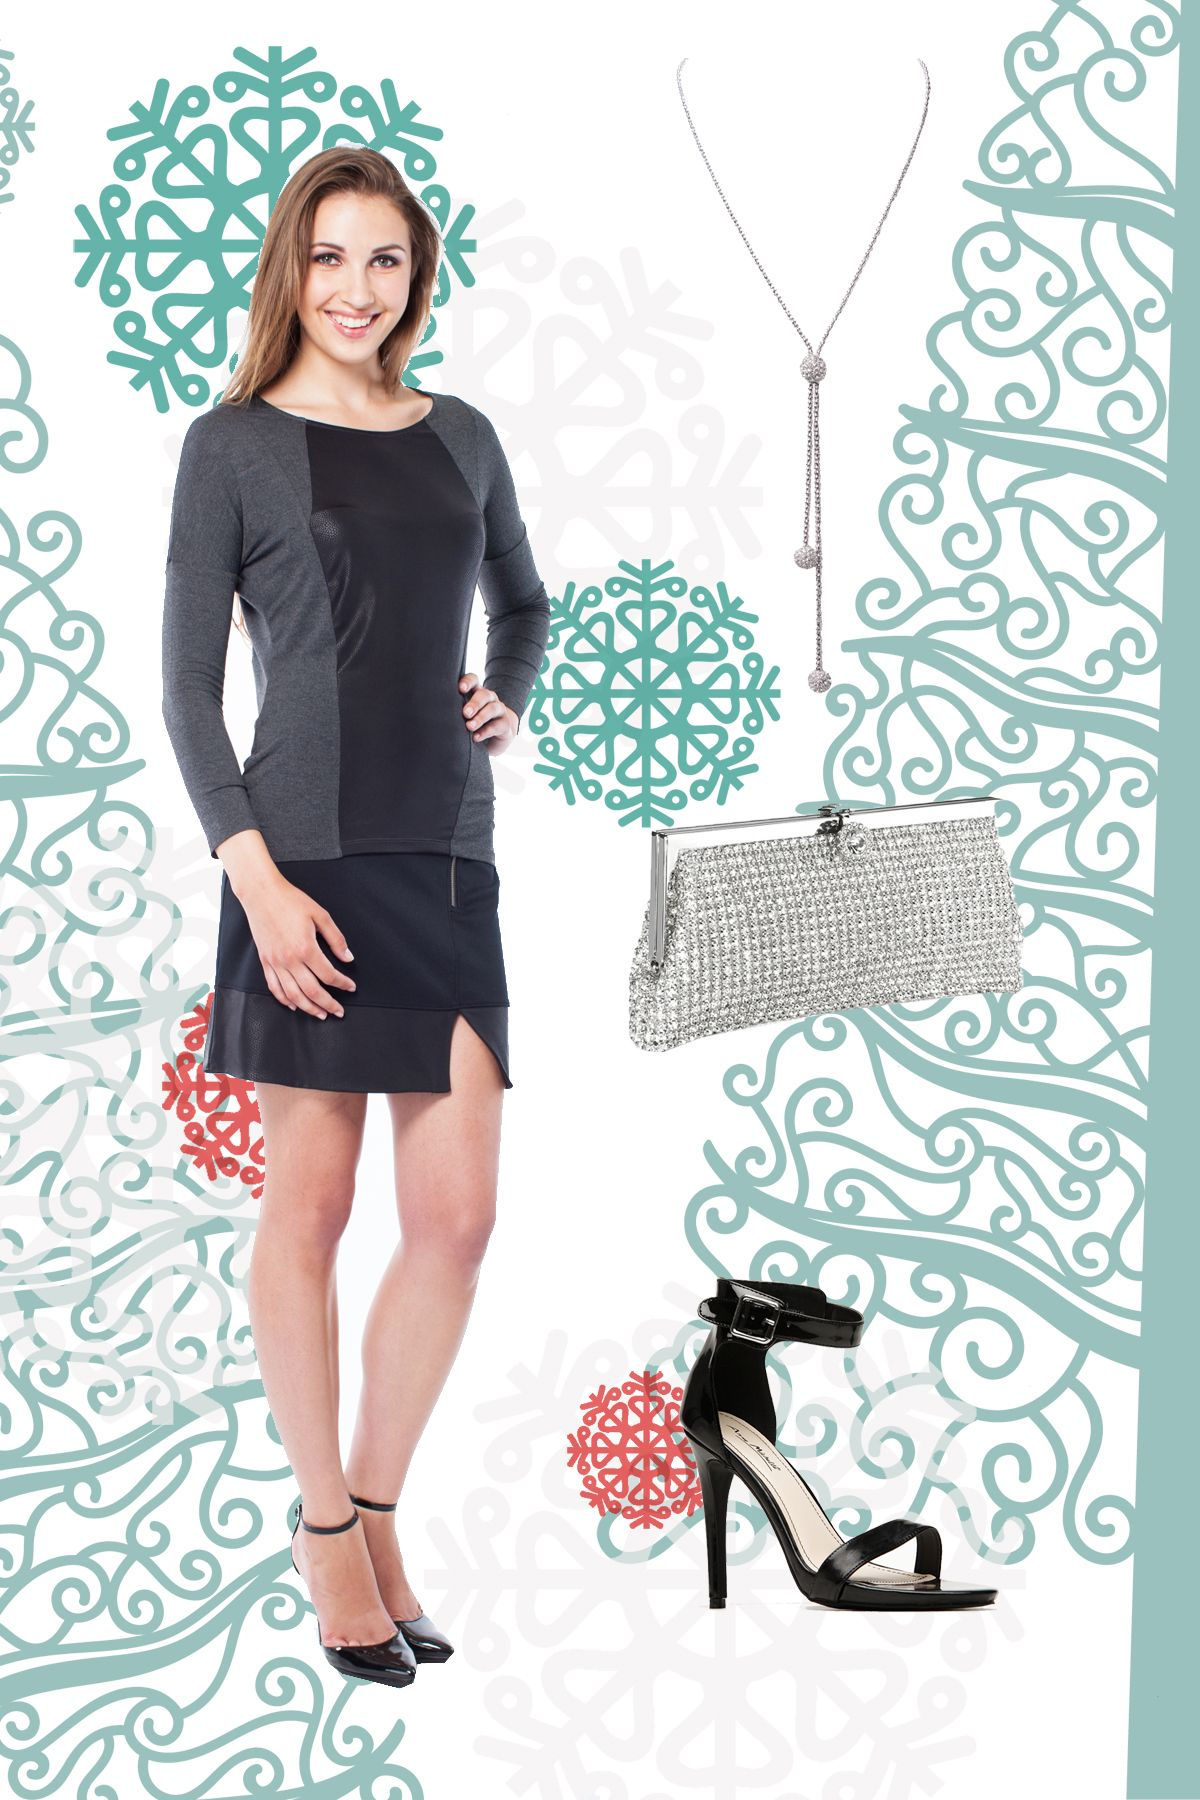 Sparkle in this party  outfit by LNBF - Annabelle Top   Allison ... 7da2c3e8e